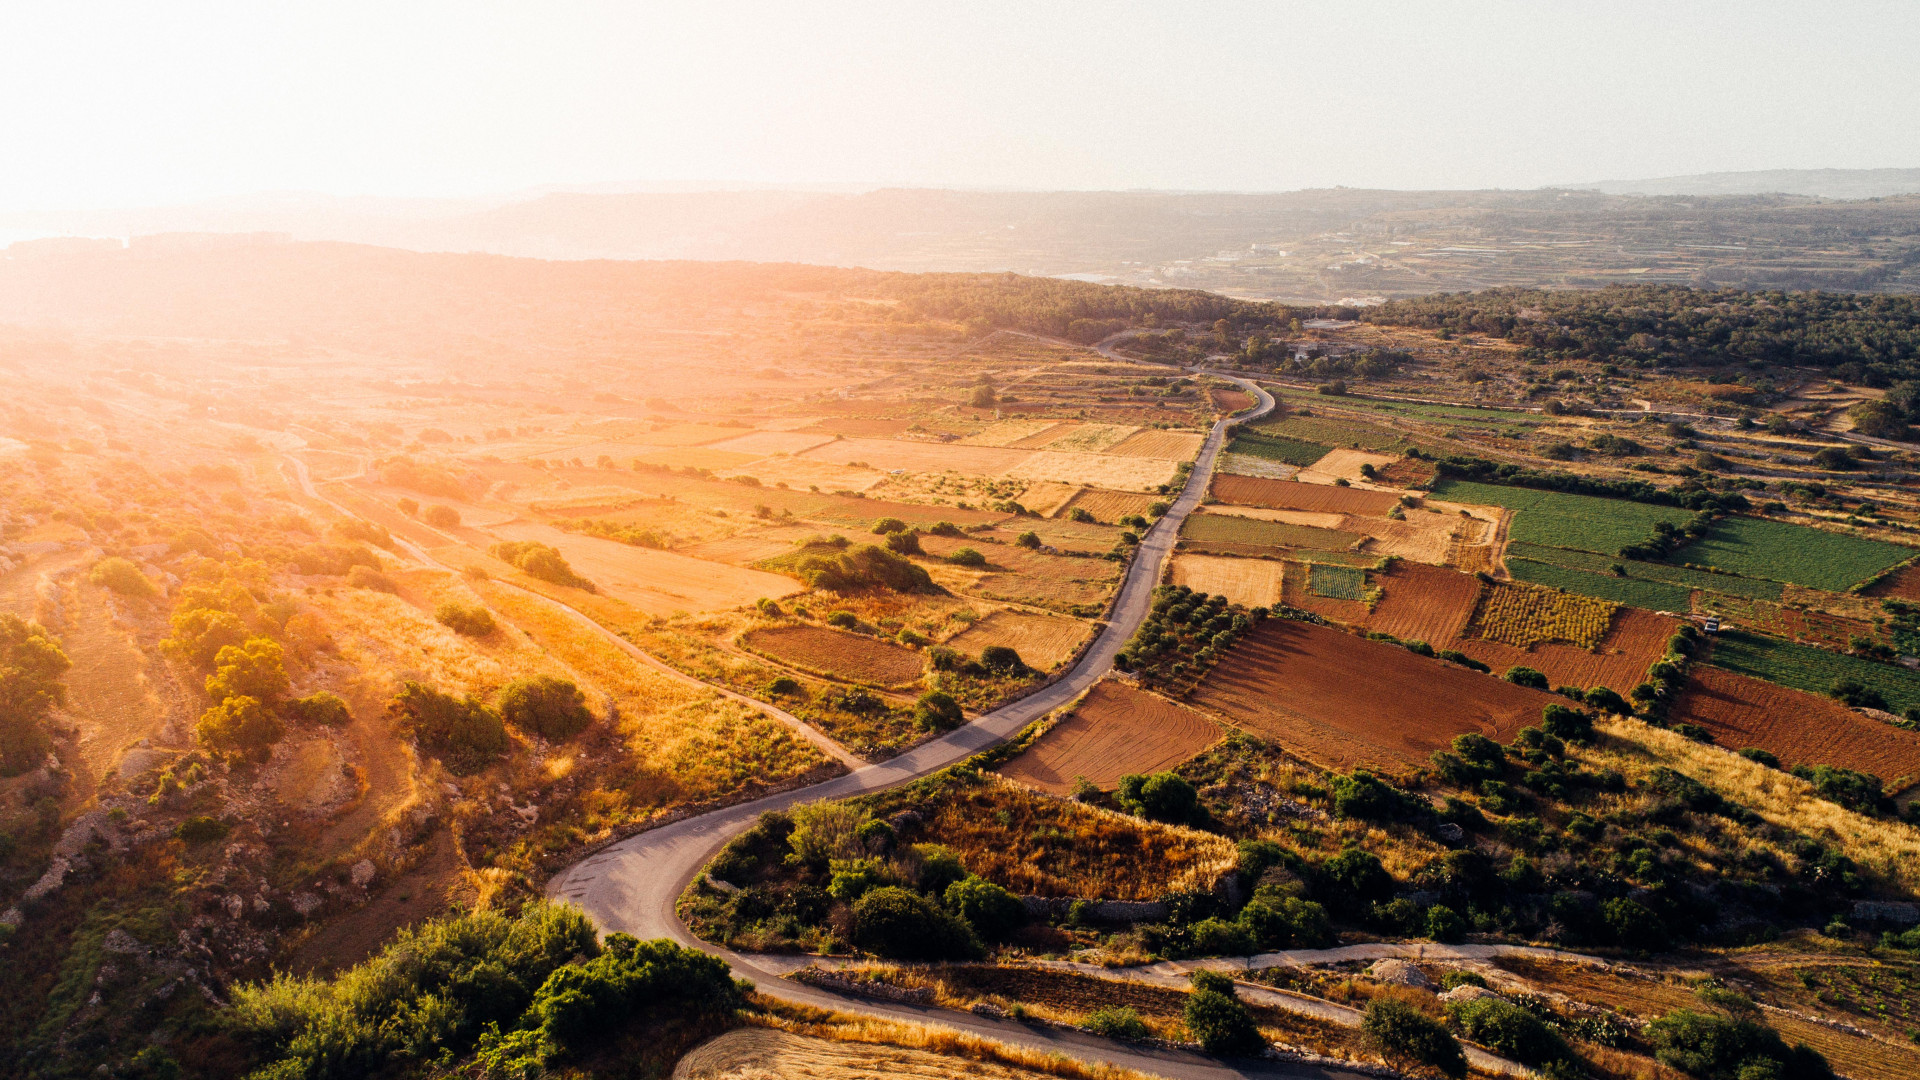 Aerial view of countryside on the island of Malta